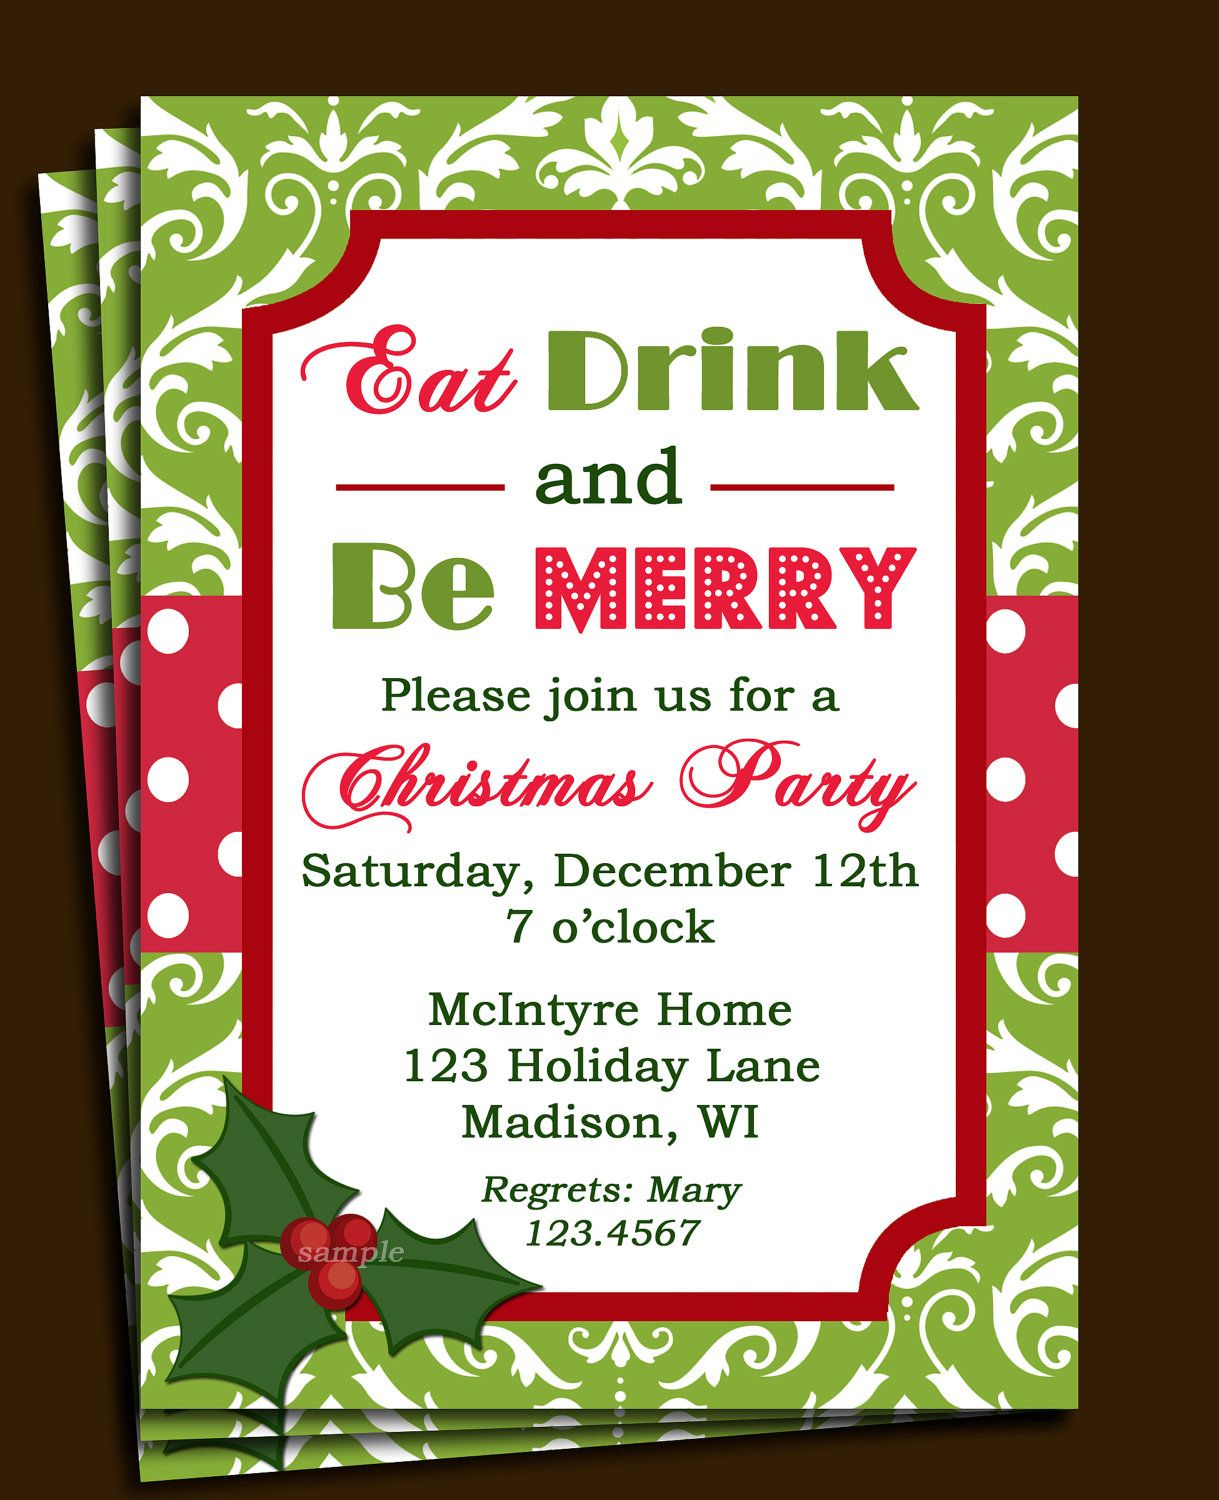 Word Christmas Party Invitation Templates Free Christmas Invitations Template Free Christmas Invitation Templates Christmas Party Invitation Template